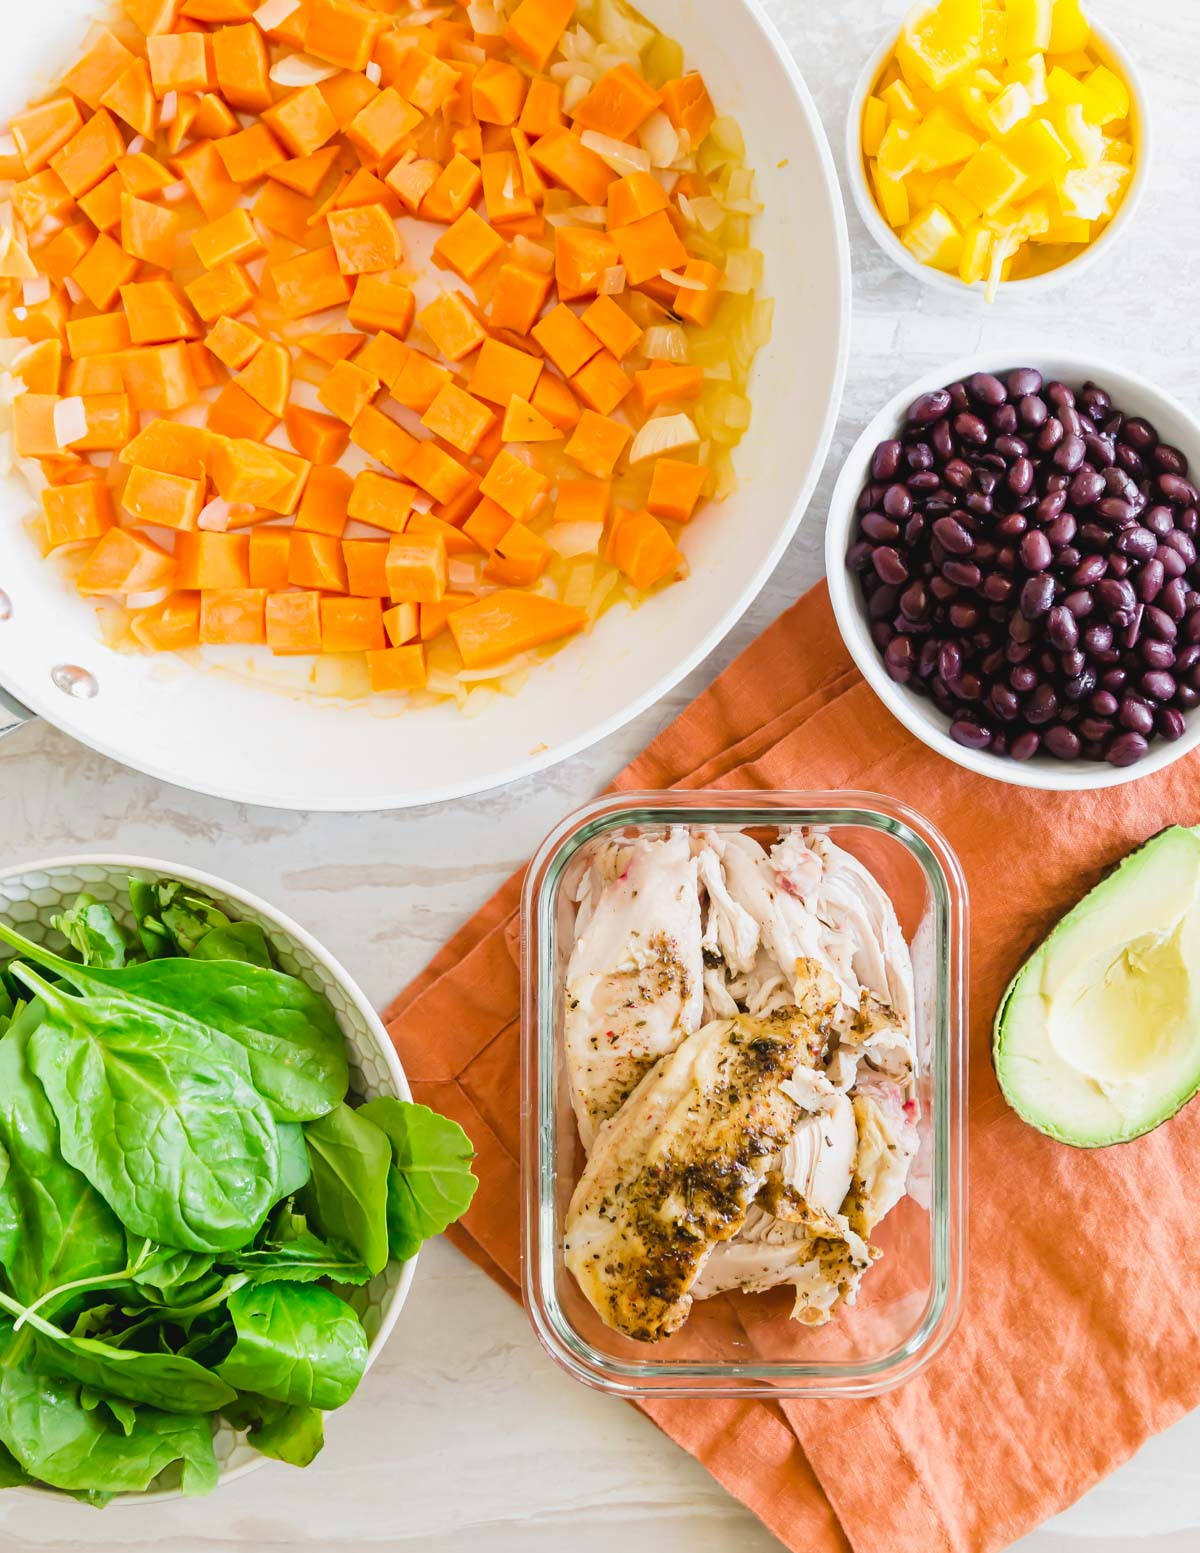 ingredients for this one pan turkey sweet potato skillet including sweet potatoes, onions, yellow bell pepper, black beans, baby greens and leftover turkey.